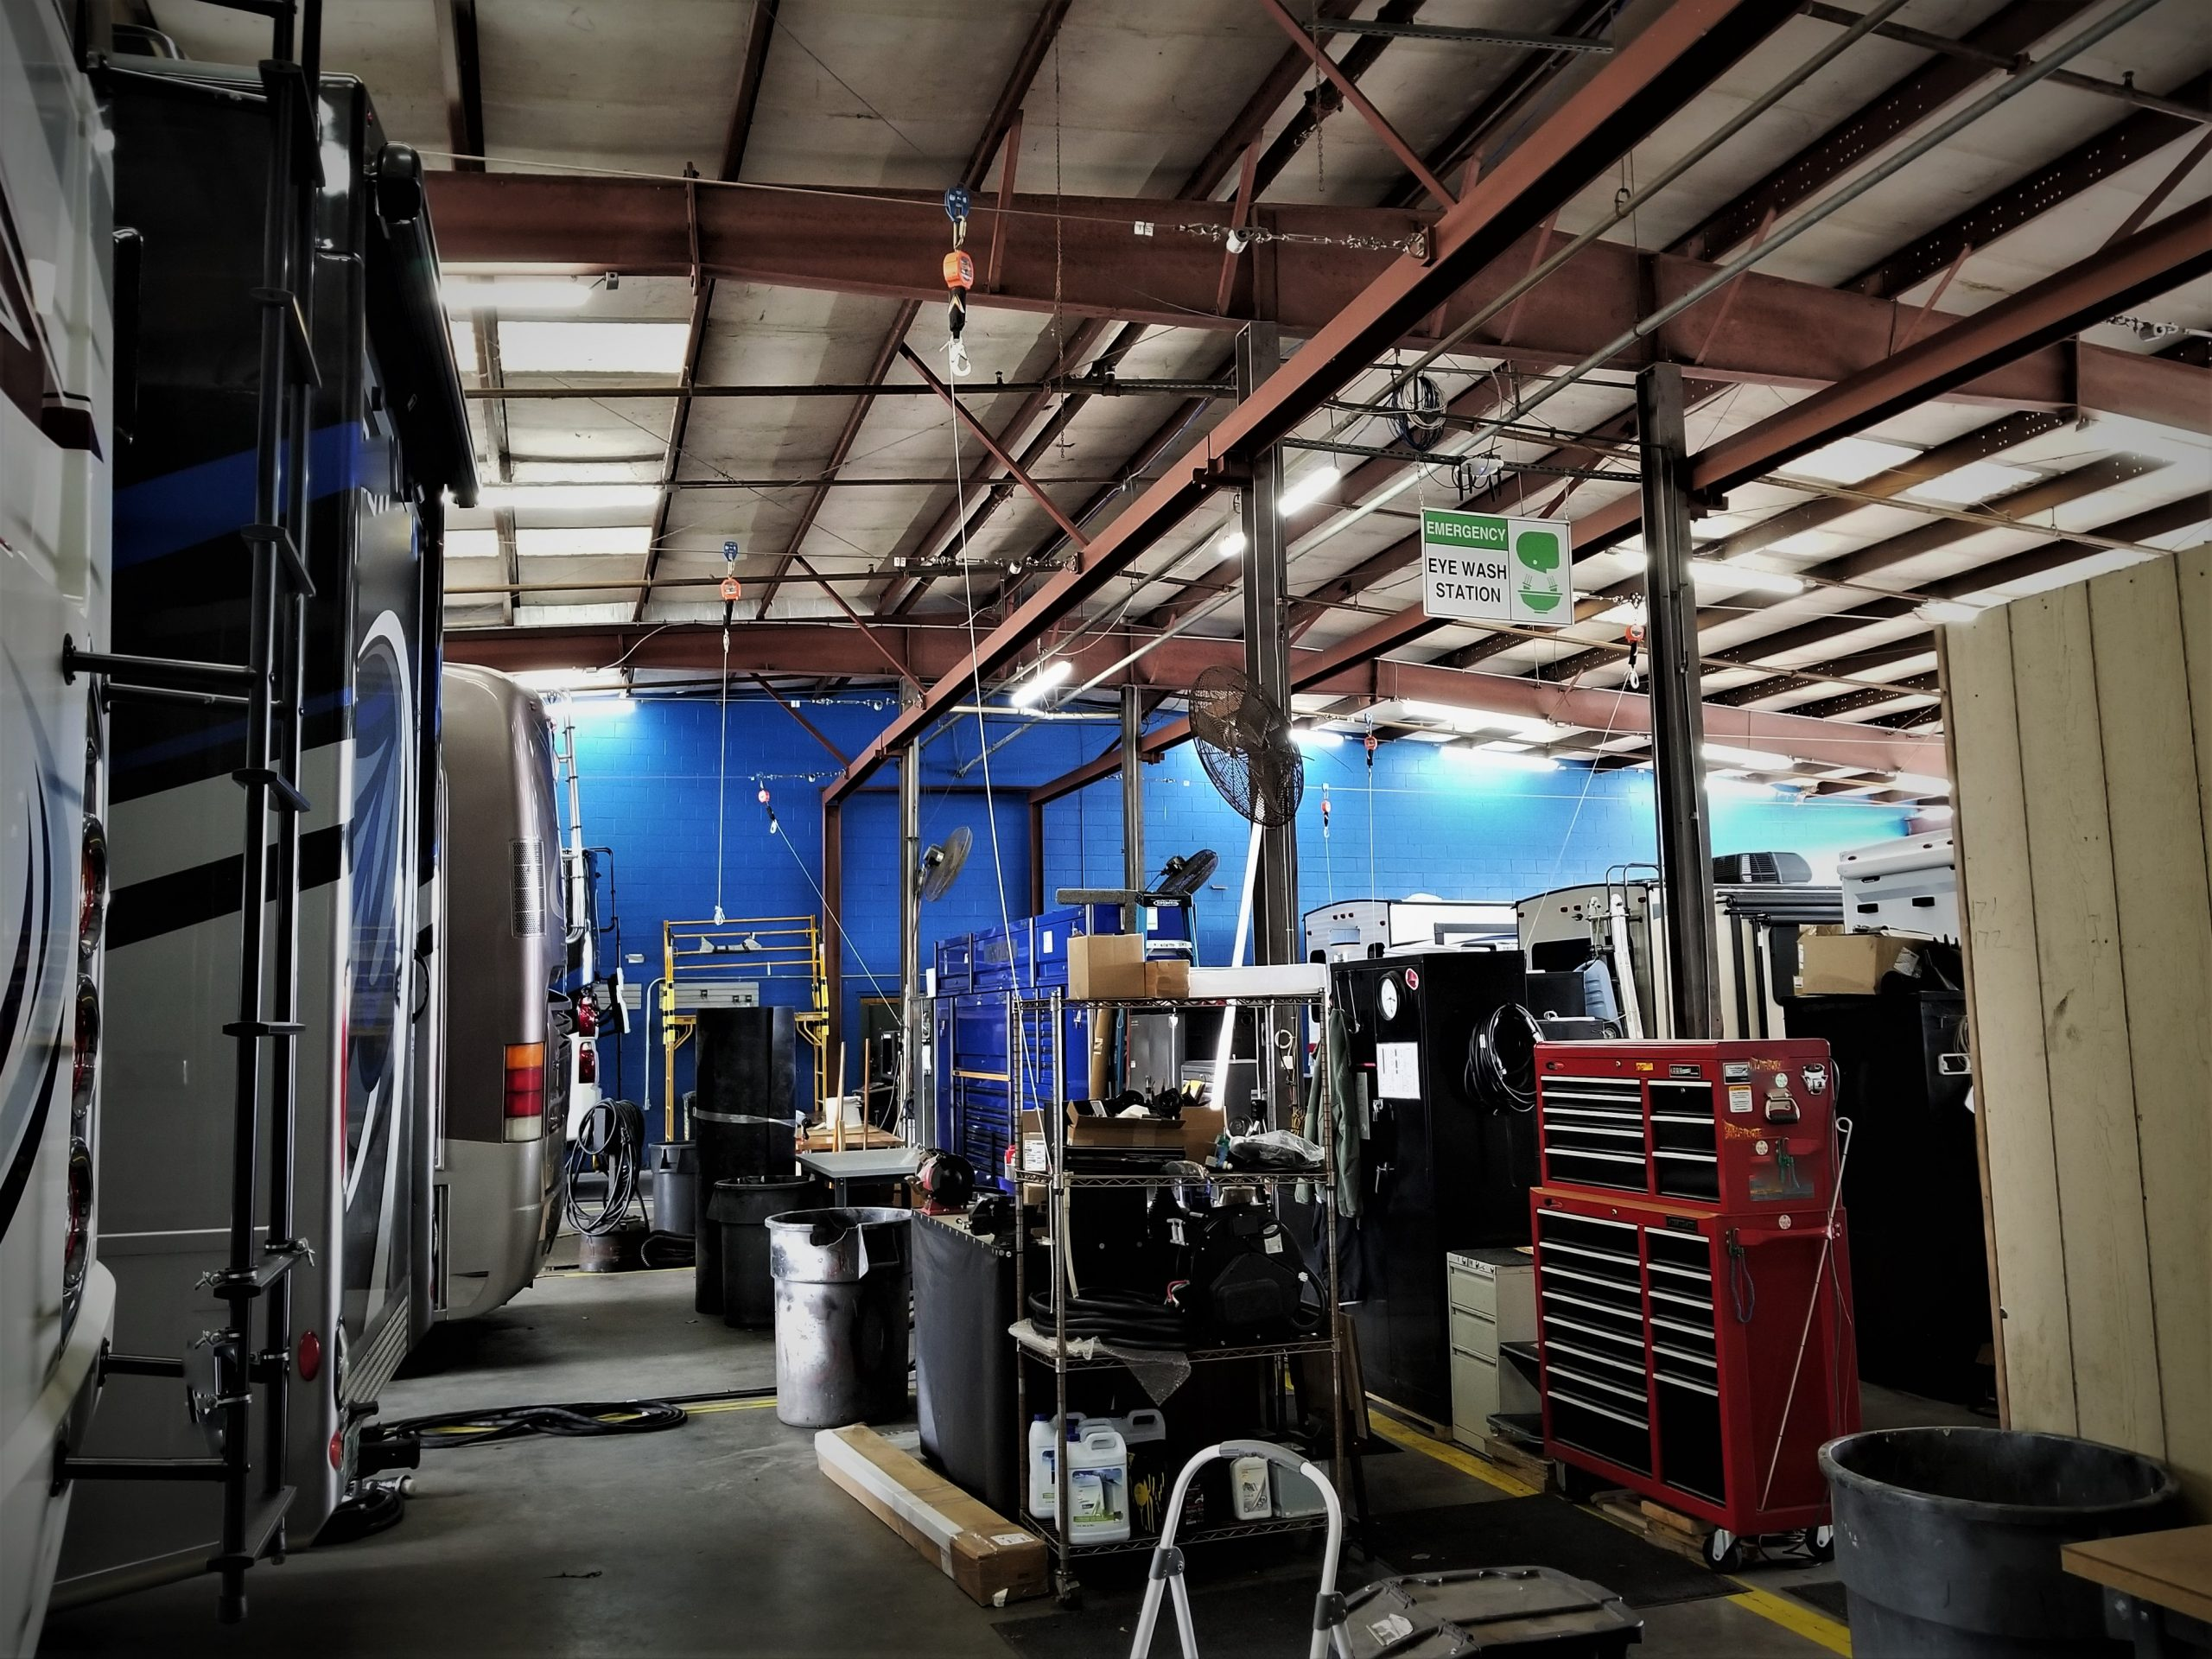 Brazel specializes in RV and truck chassis work, and specialty parts via their websites